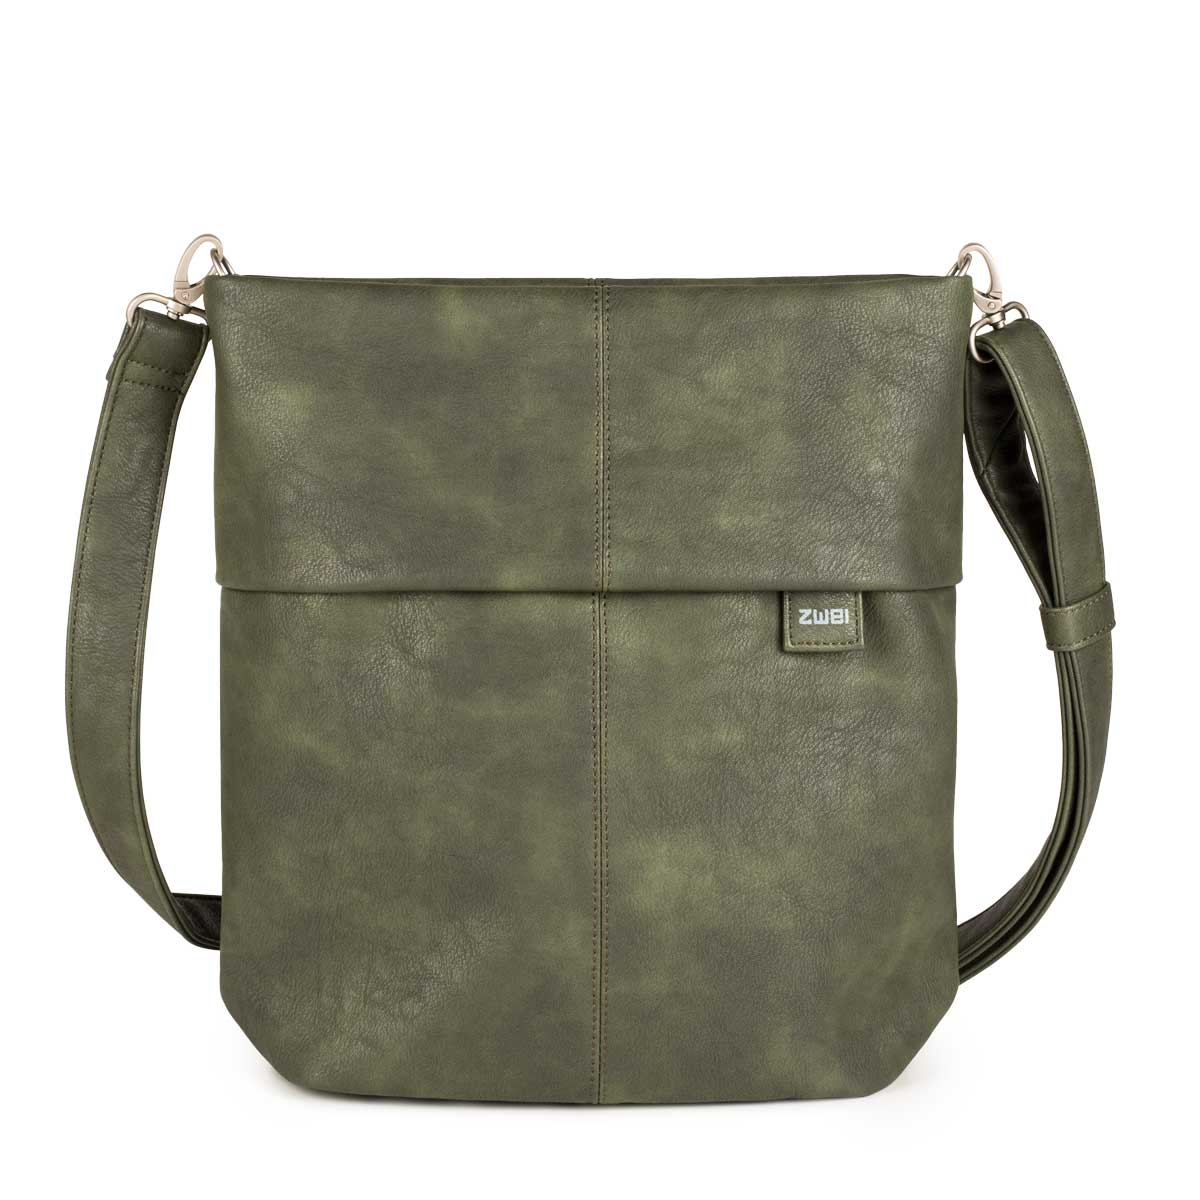 M12 - bag with interchangeable shoulder straps